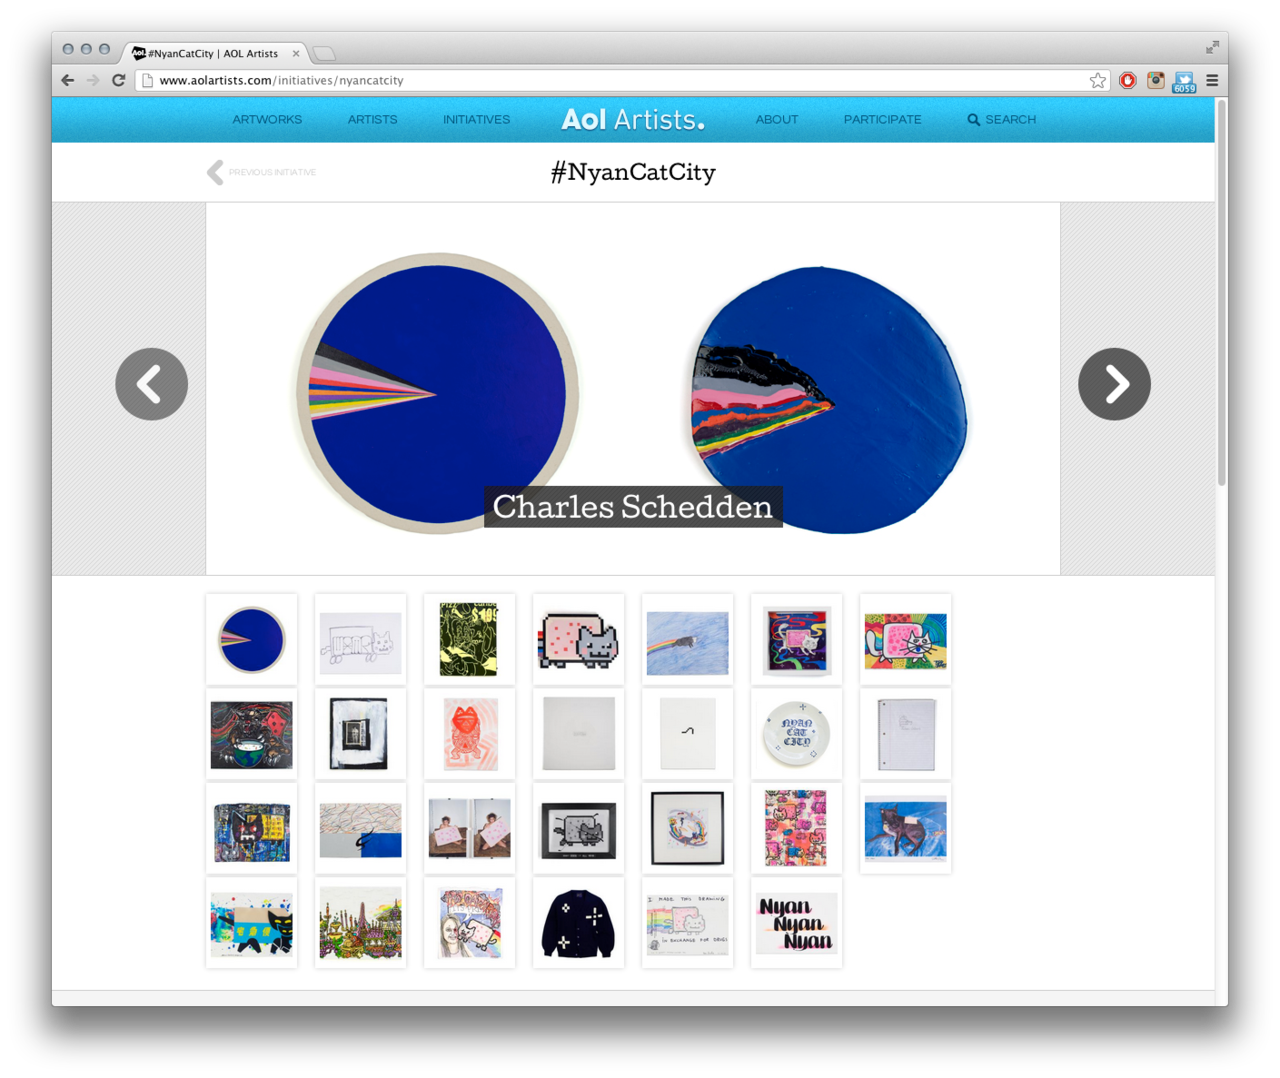 Click image to view #NYANCATCITY artist submissions